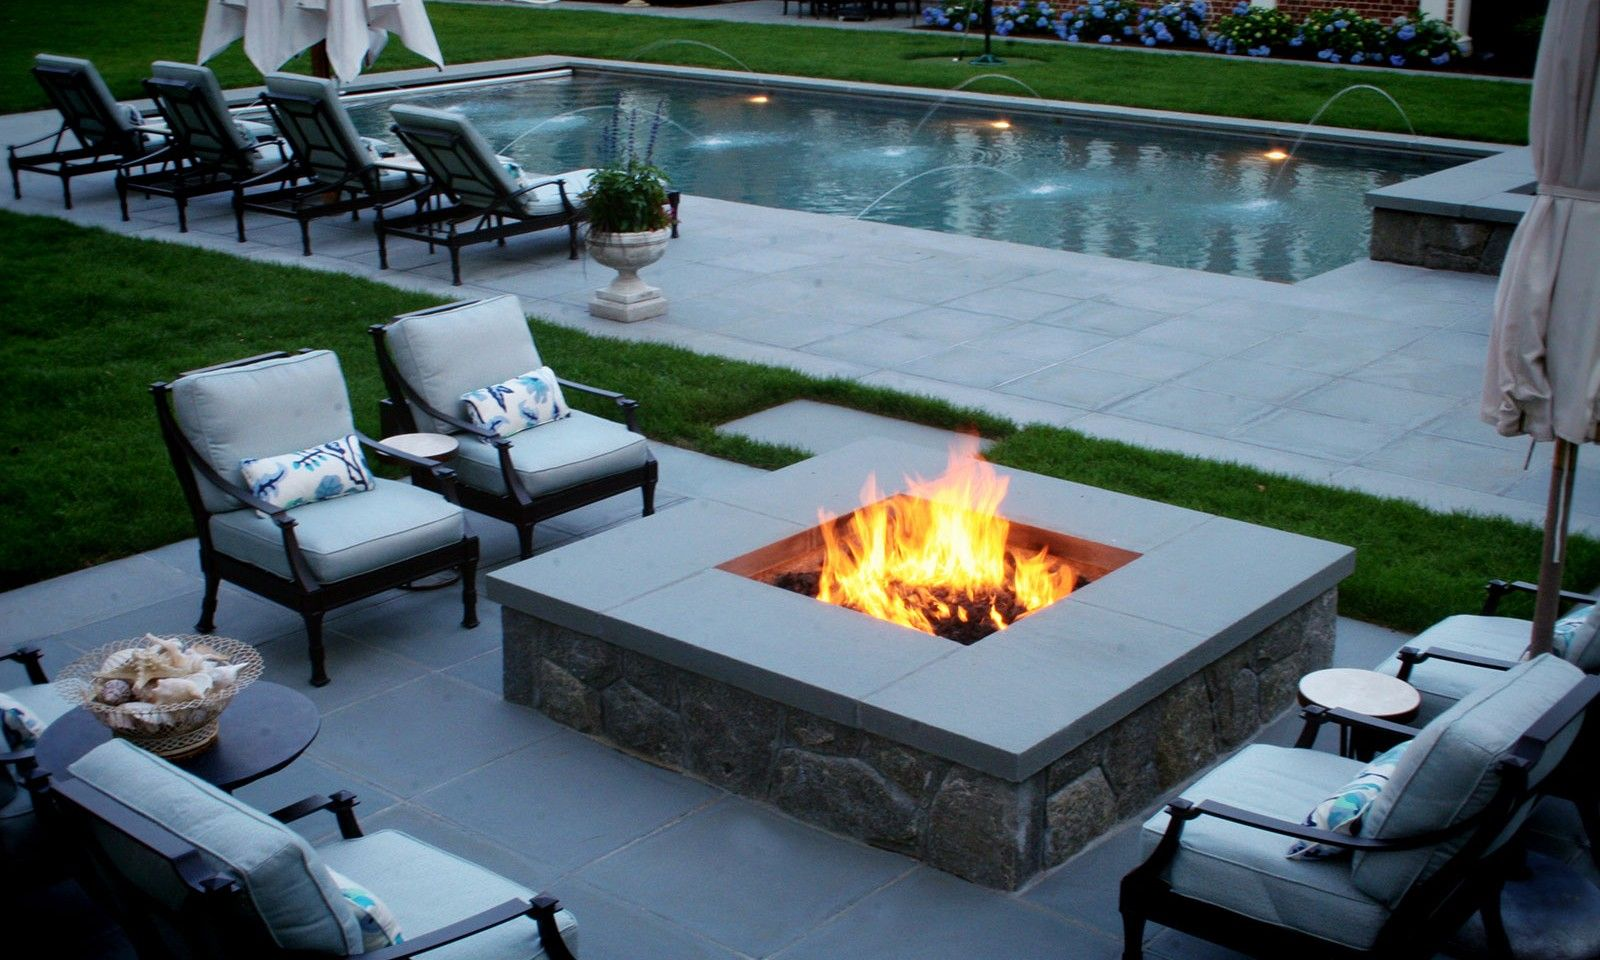 Number One Natural Gas Outdoor Fireplace High Definition Natural Gas Fire Pit Burner Ri Outdoor Gas Fireplace Backyard Fireplace Natural Gas Outdoor Fireplace